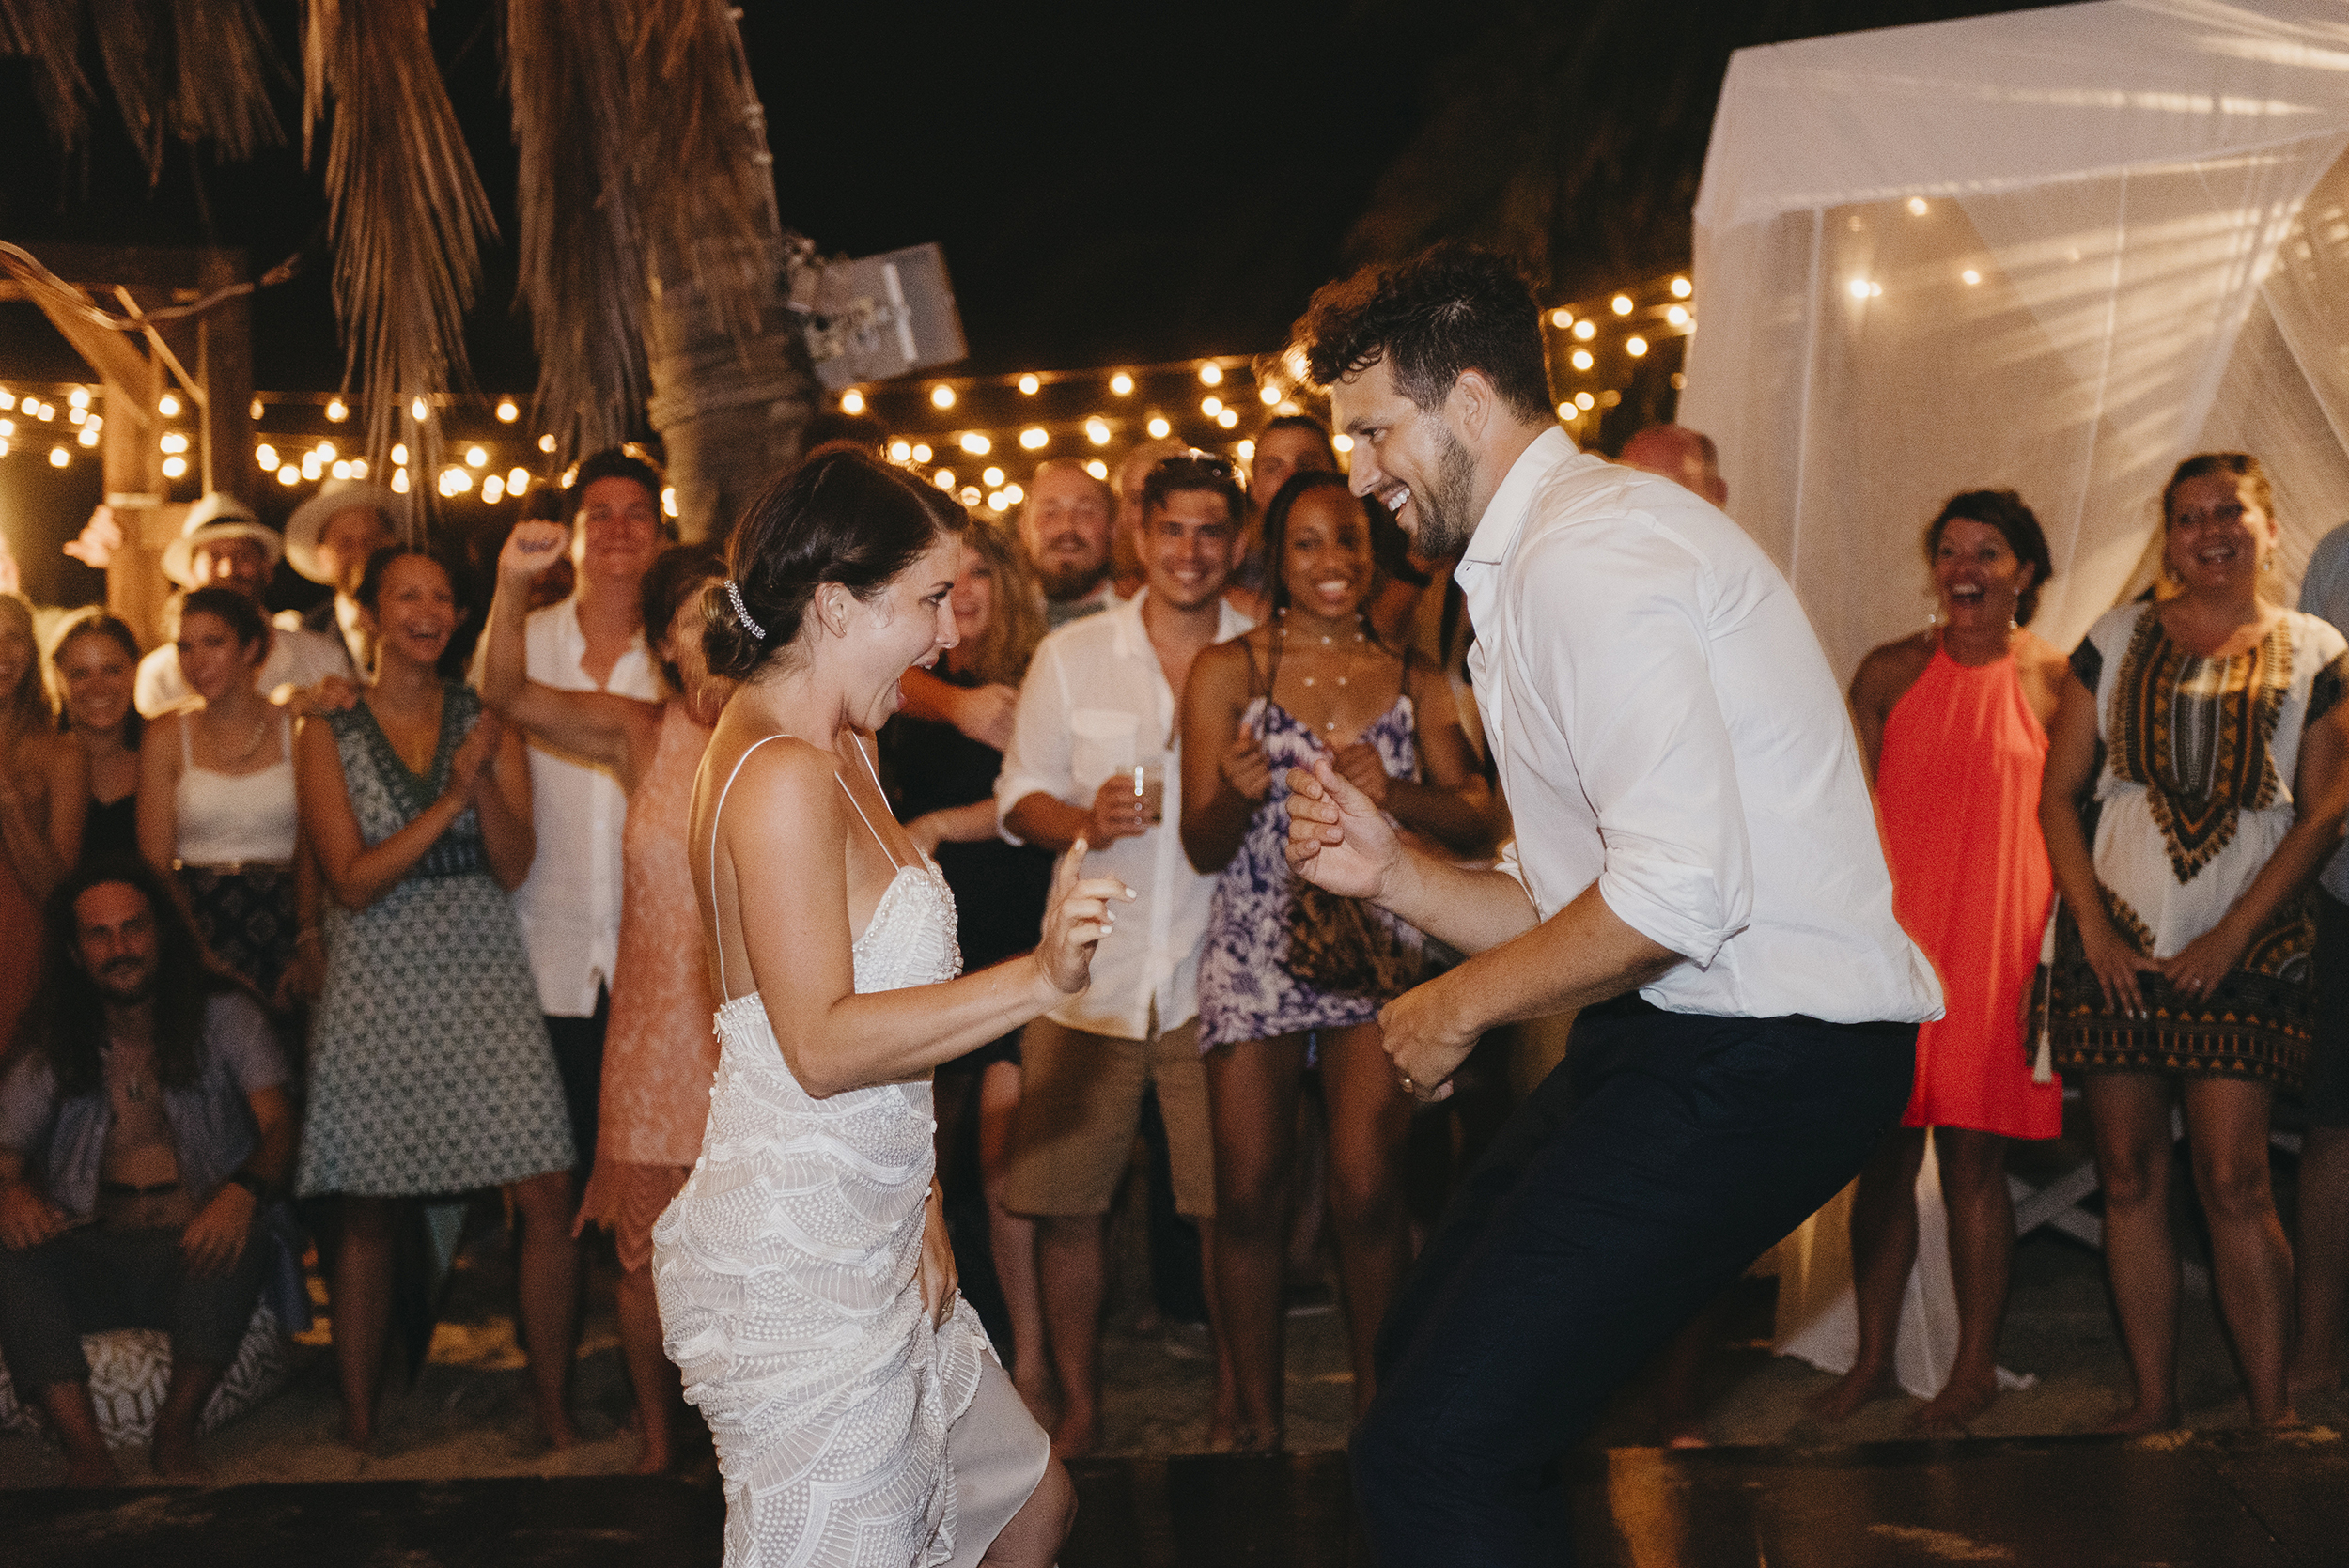 Colby-and-Jess-Intimate-Destination-Wedding-Sayulita-Puerto-Vallarta-Mexico829.jpg